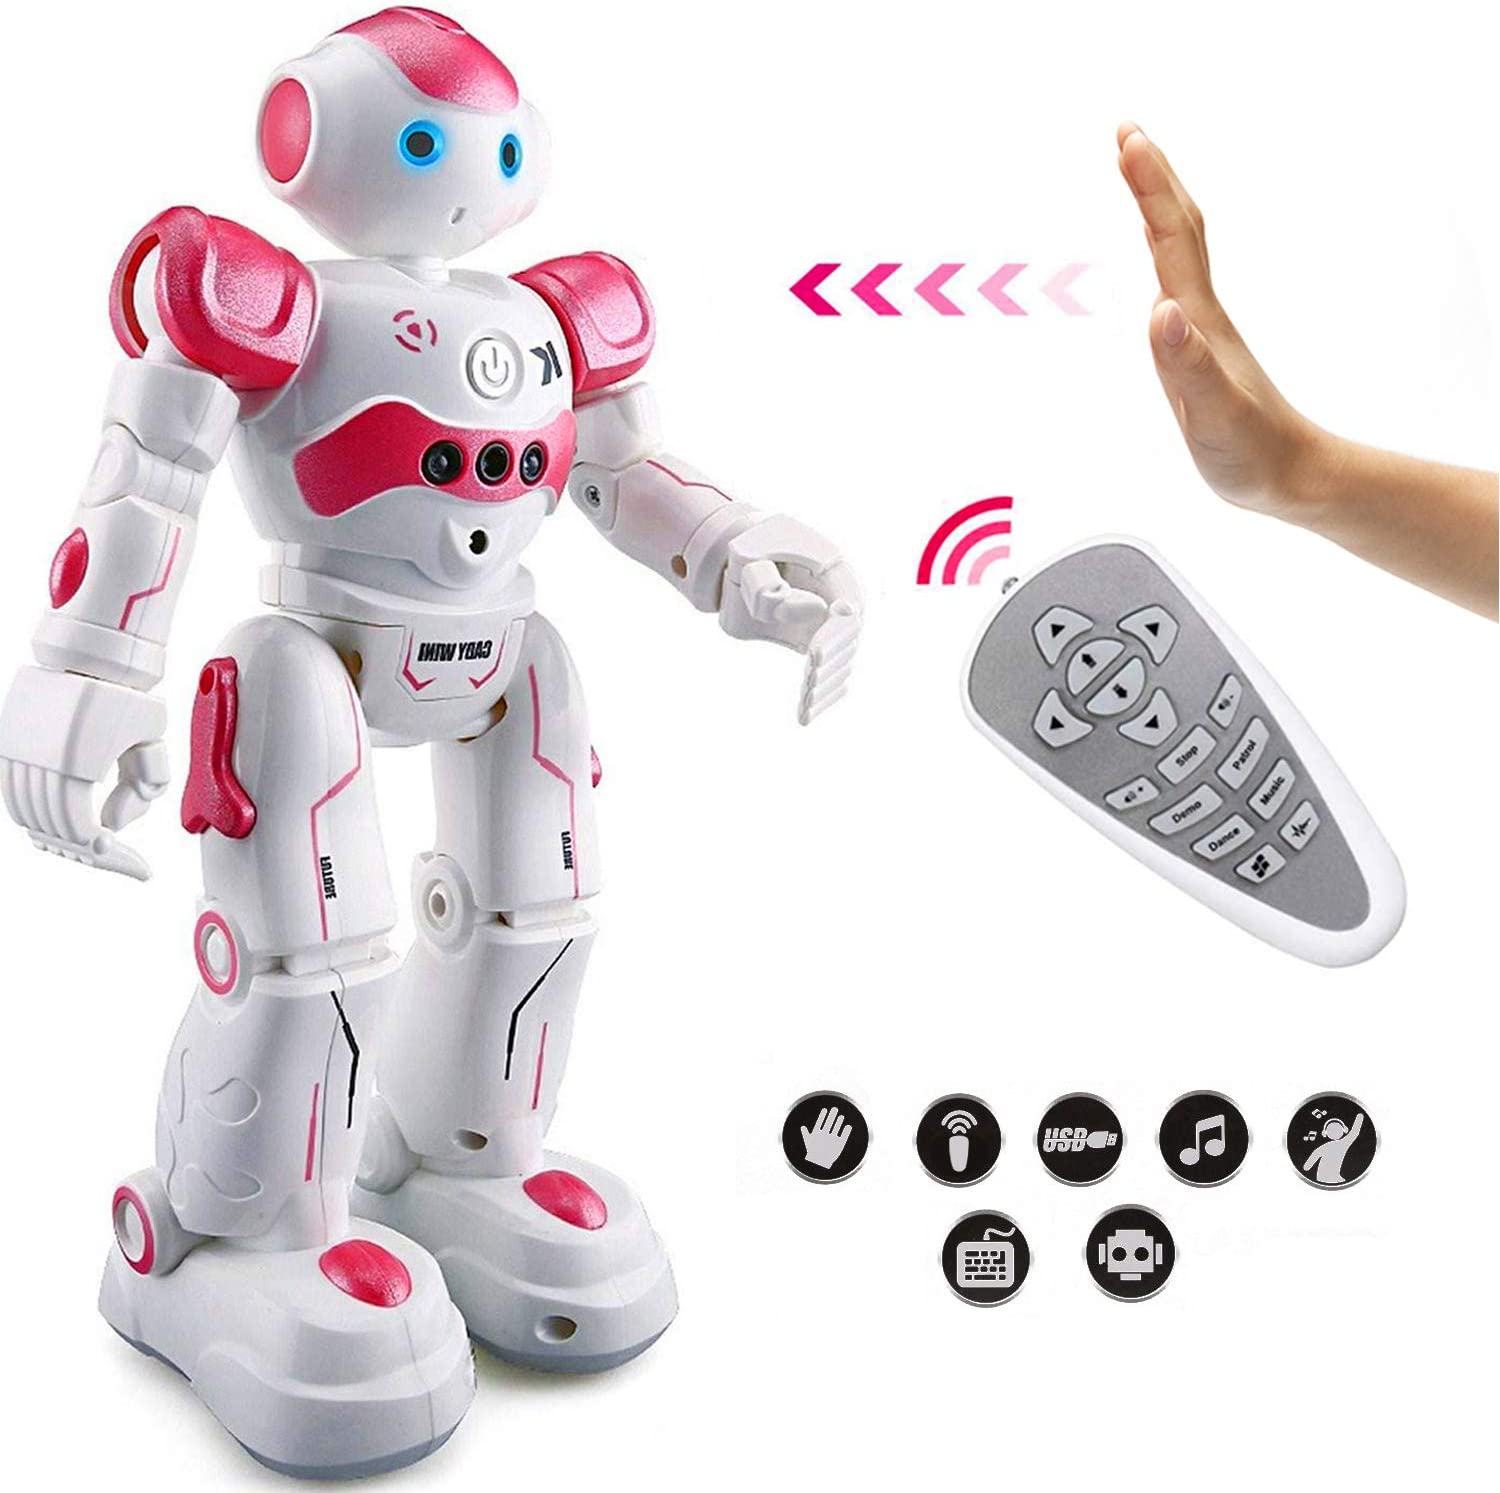 Eholder RC Smart Robot Toy for Kids Gesture Sensing Dancing Walking Remote Control Robot Intelligent Programmable Educational RC Robot Robotics Toys Gift for 5 - 10 Year Old Girls Pink Robots